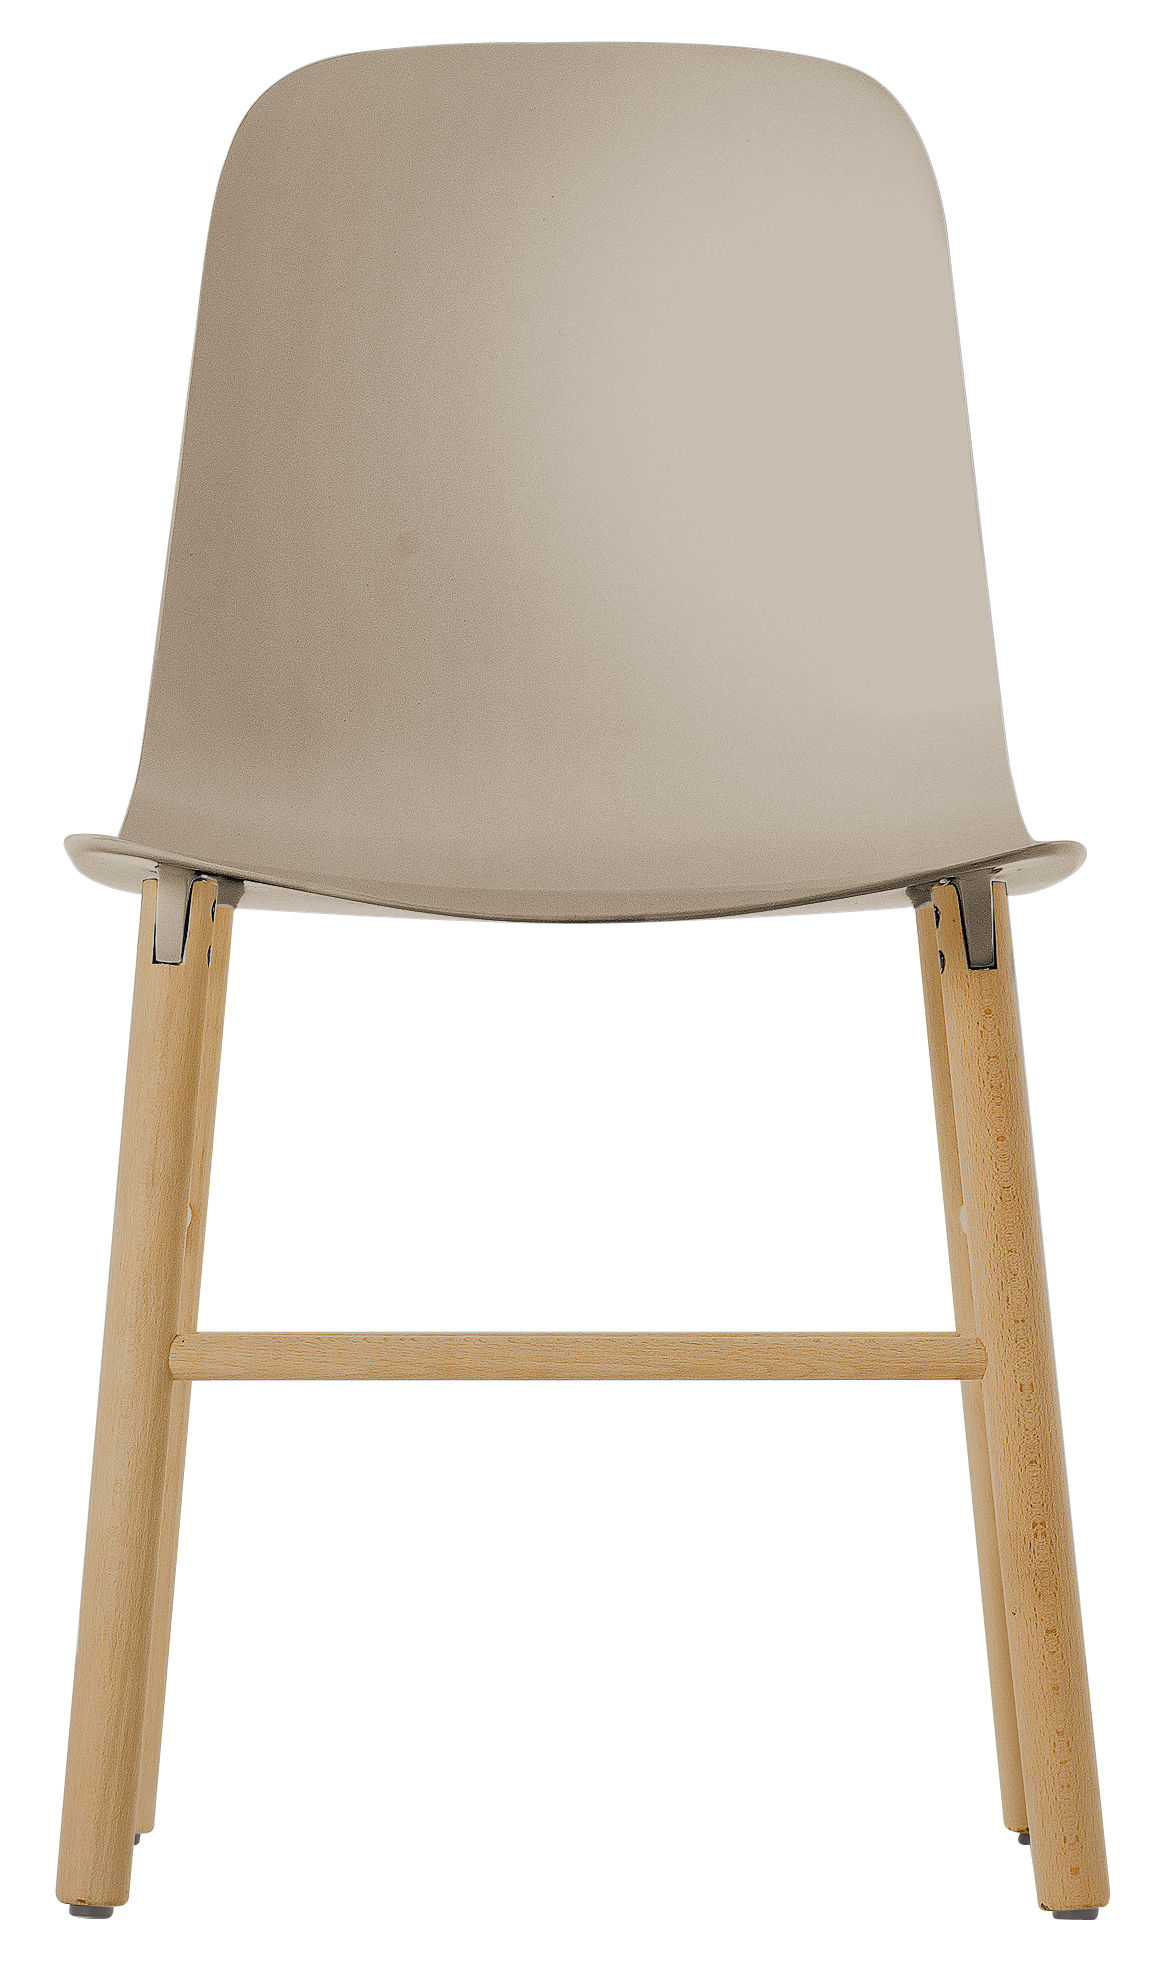 Furniture - Chairs - Sharky Chair - Plastic & wood legs by Kristalia - Beige / Natural wood - Natural beechwood, Polyurethane